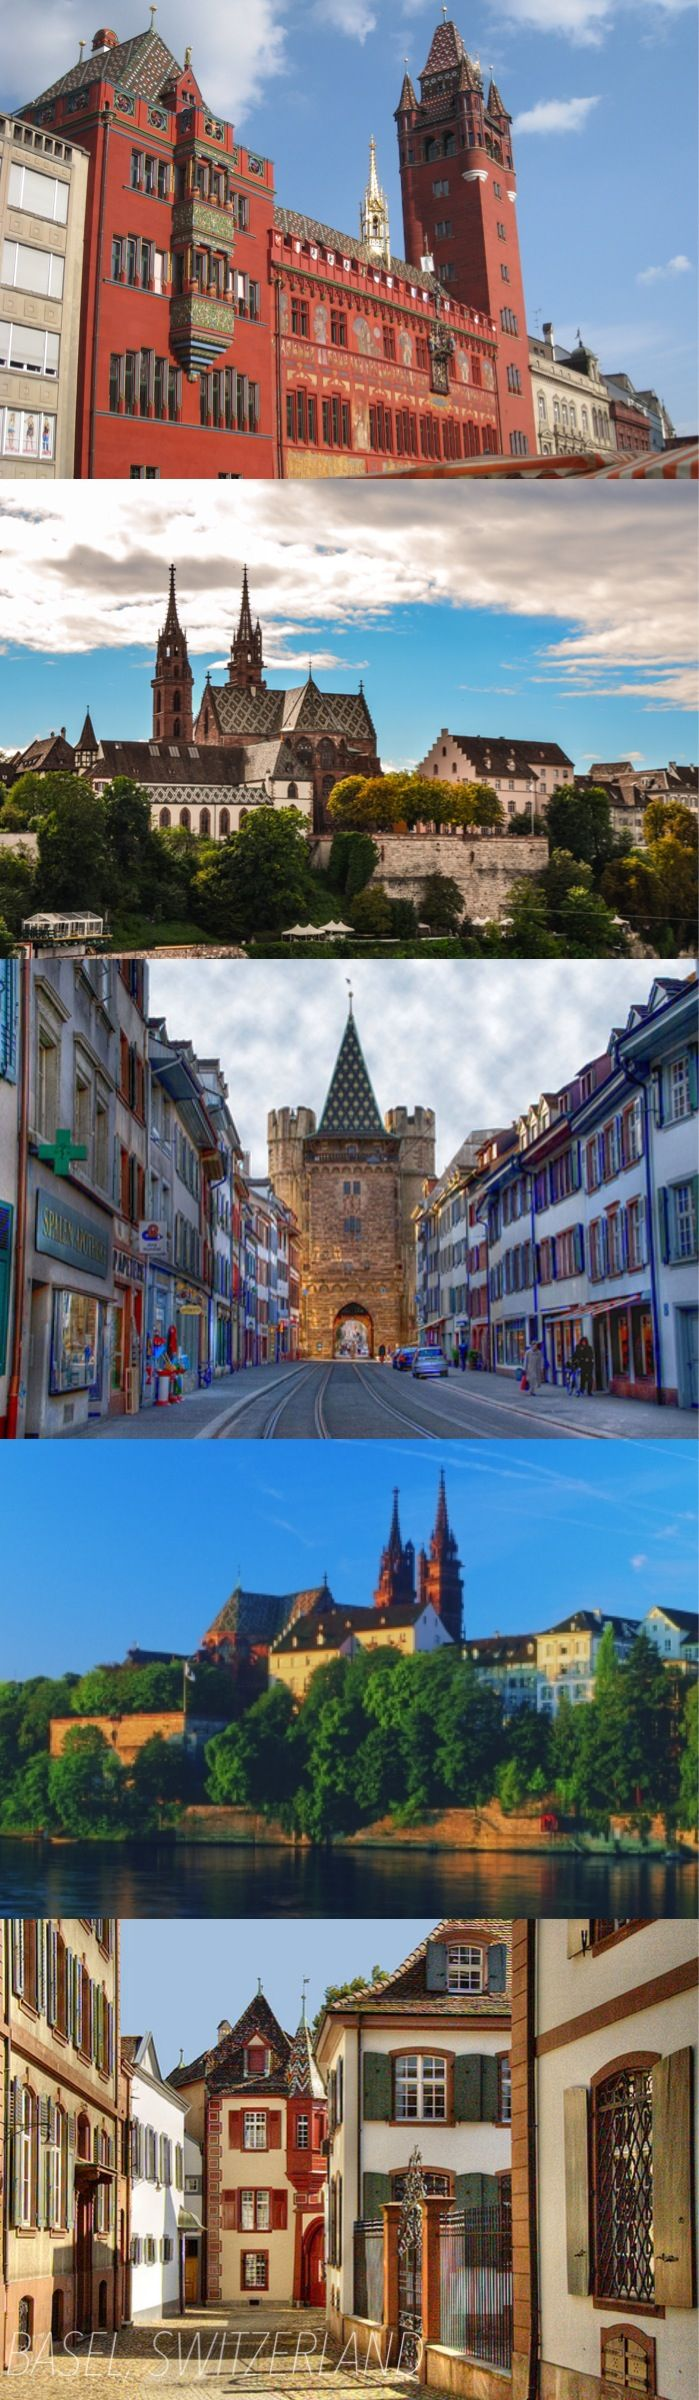 The Old Town of Basel contains several heritage sites of note, as well as photogenic architecture of yore. With rabid support for local club FC Basel, the throngs should be in full revelry once Euro 2008 kicks off.